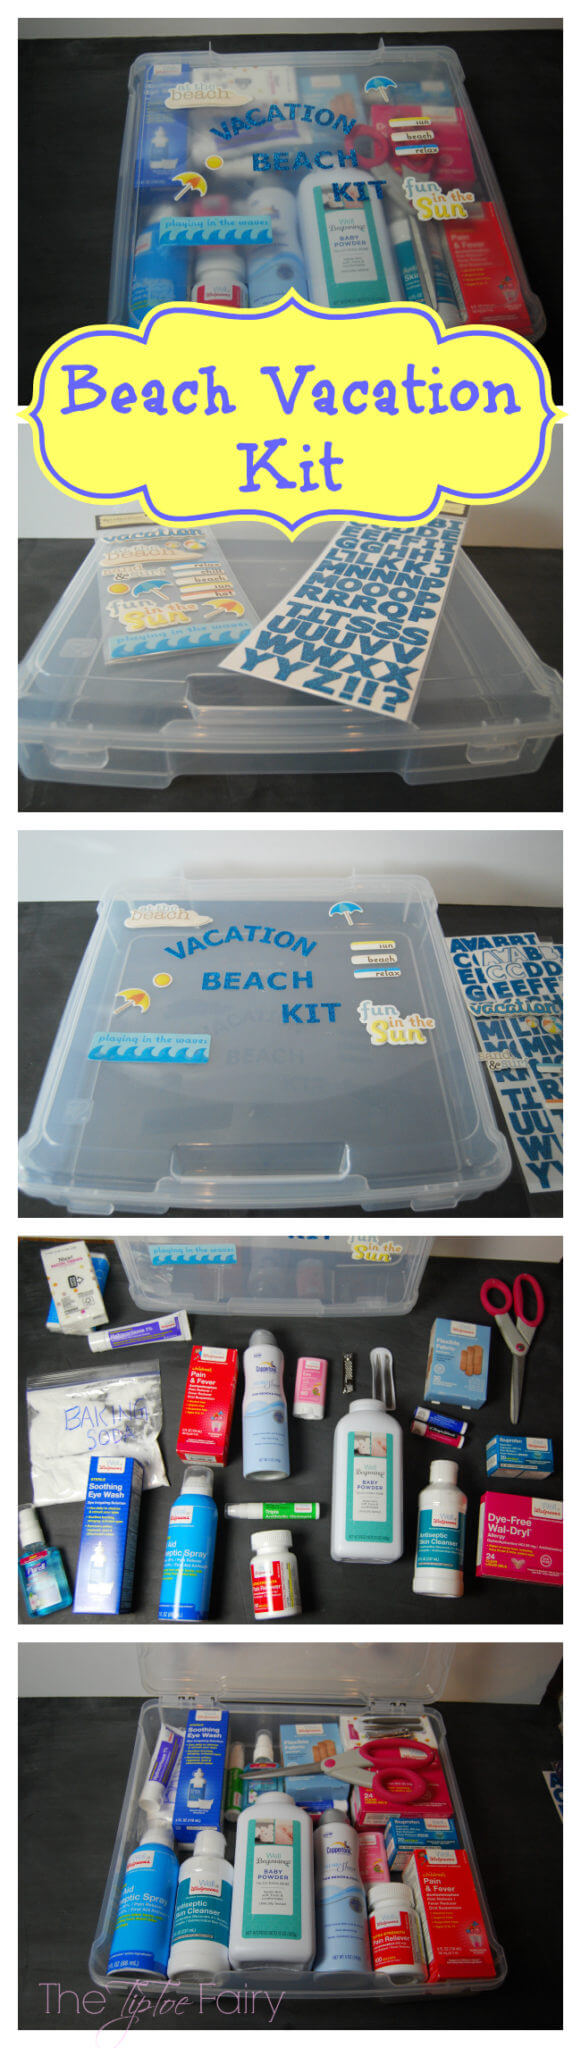 Going on Vacation? Make a Health Wellness Kit! Check this Beach Vacation Kit!   The TipToe Fairy #WellAtWalgreens #shop #vacationkit